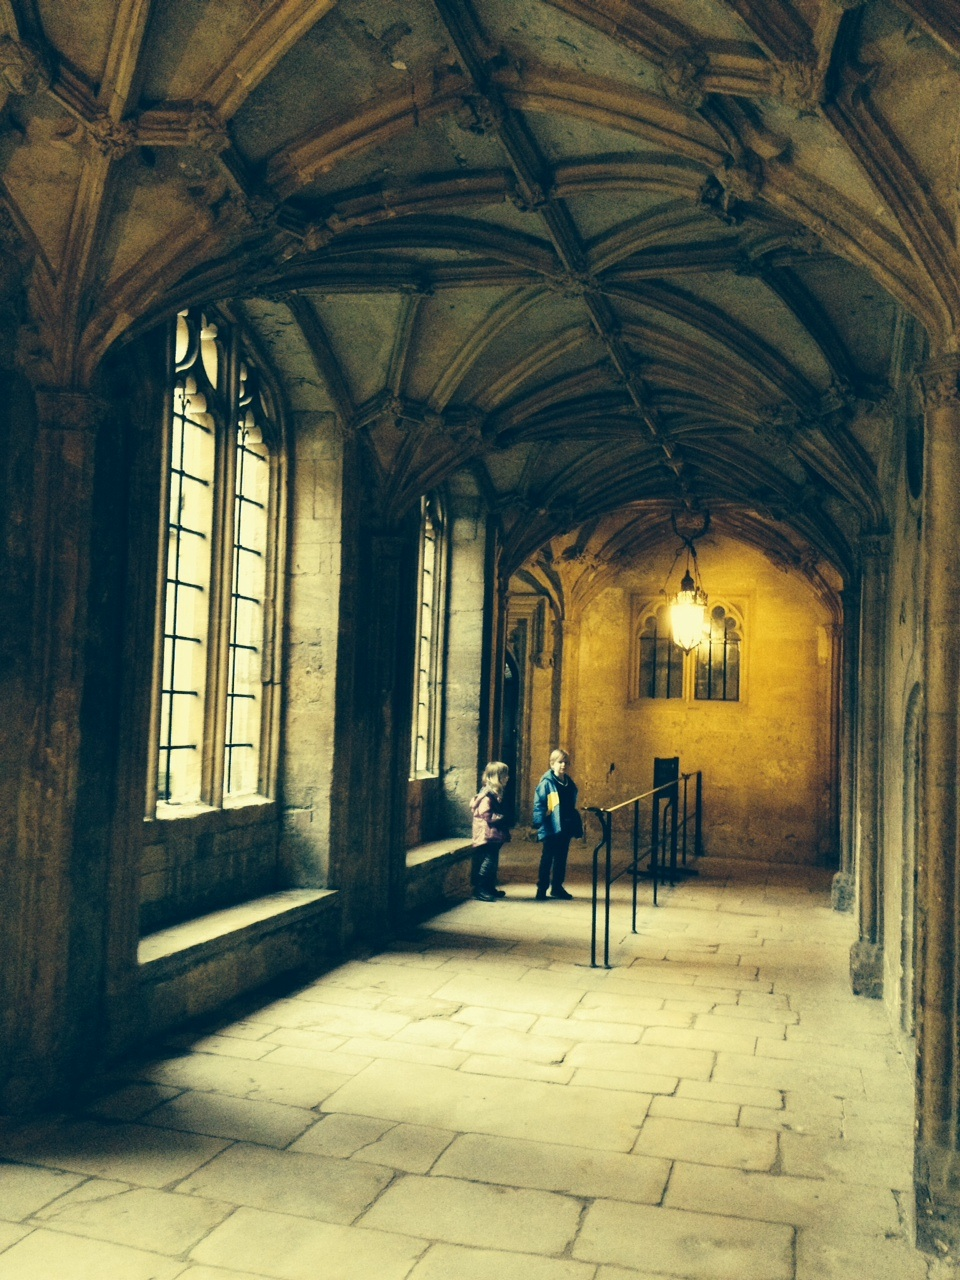 Harry potter on the trail in oxford globalmouse travels even without the harry potter link christ church college is beautiful and a wonderful place to spend an afternoon its inspiring and you can feel the publicscrutiny Choice Image